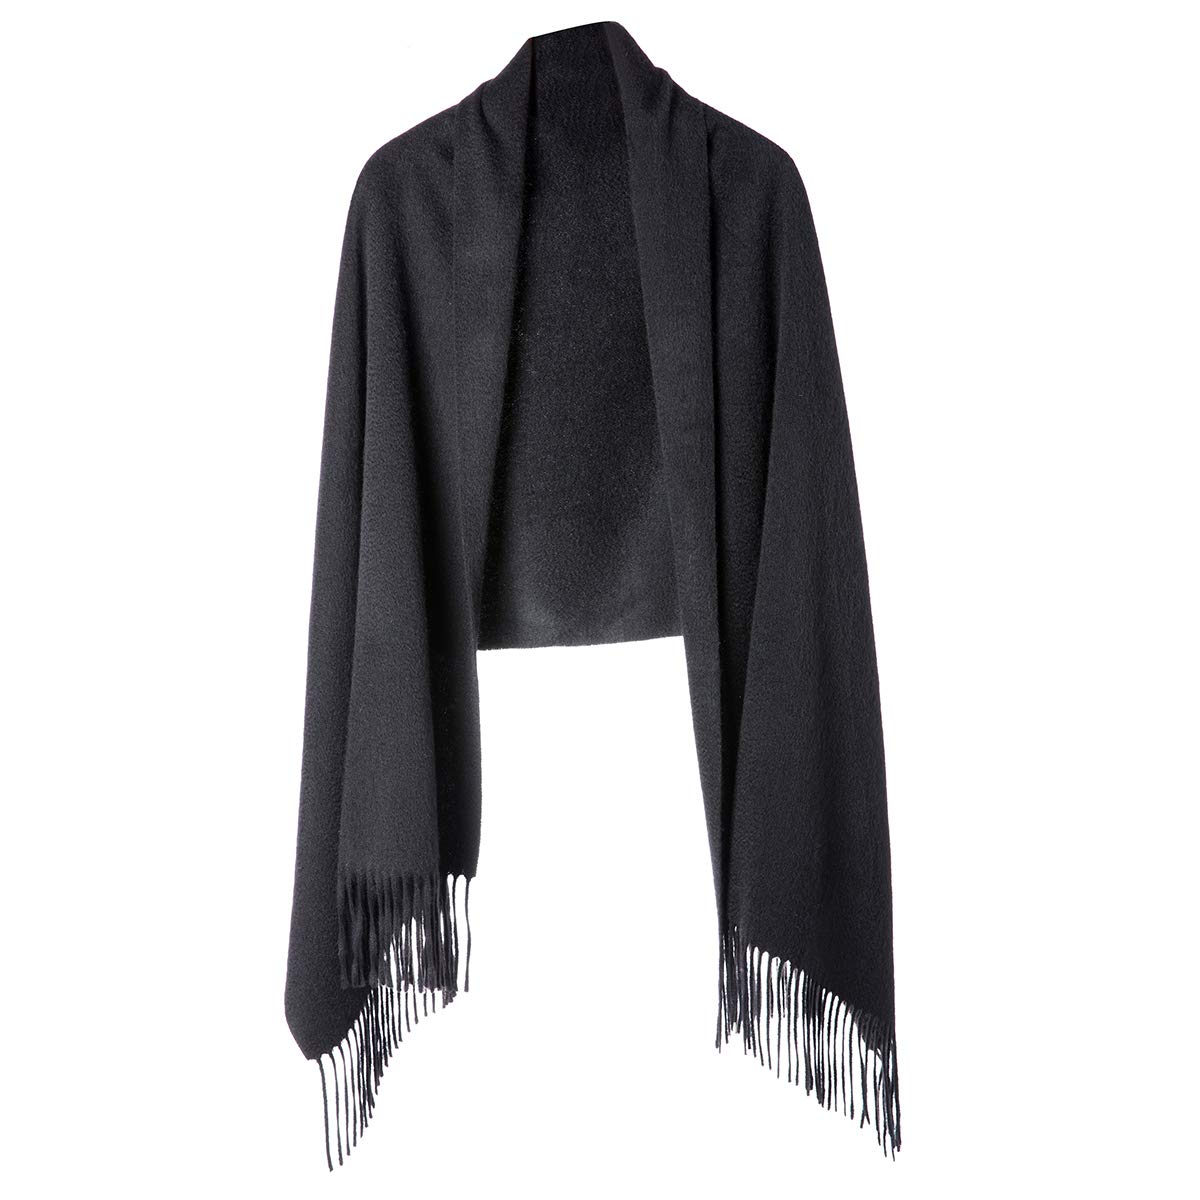 Cashmere Wrap Shawl for Women | Authentic 100% Pure Cashmere Extra Large (75inx25.6in) Scarf, Black